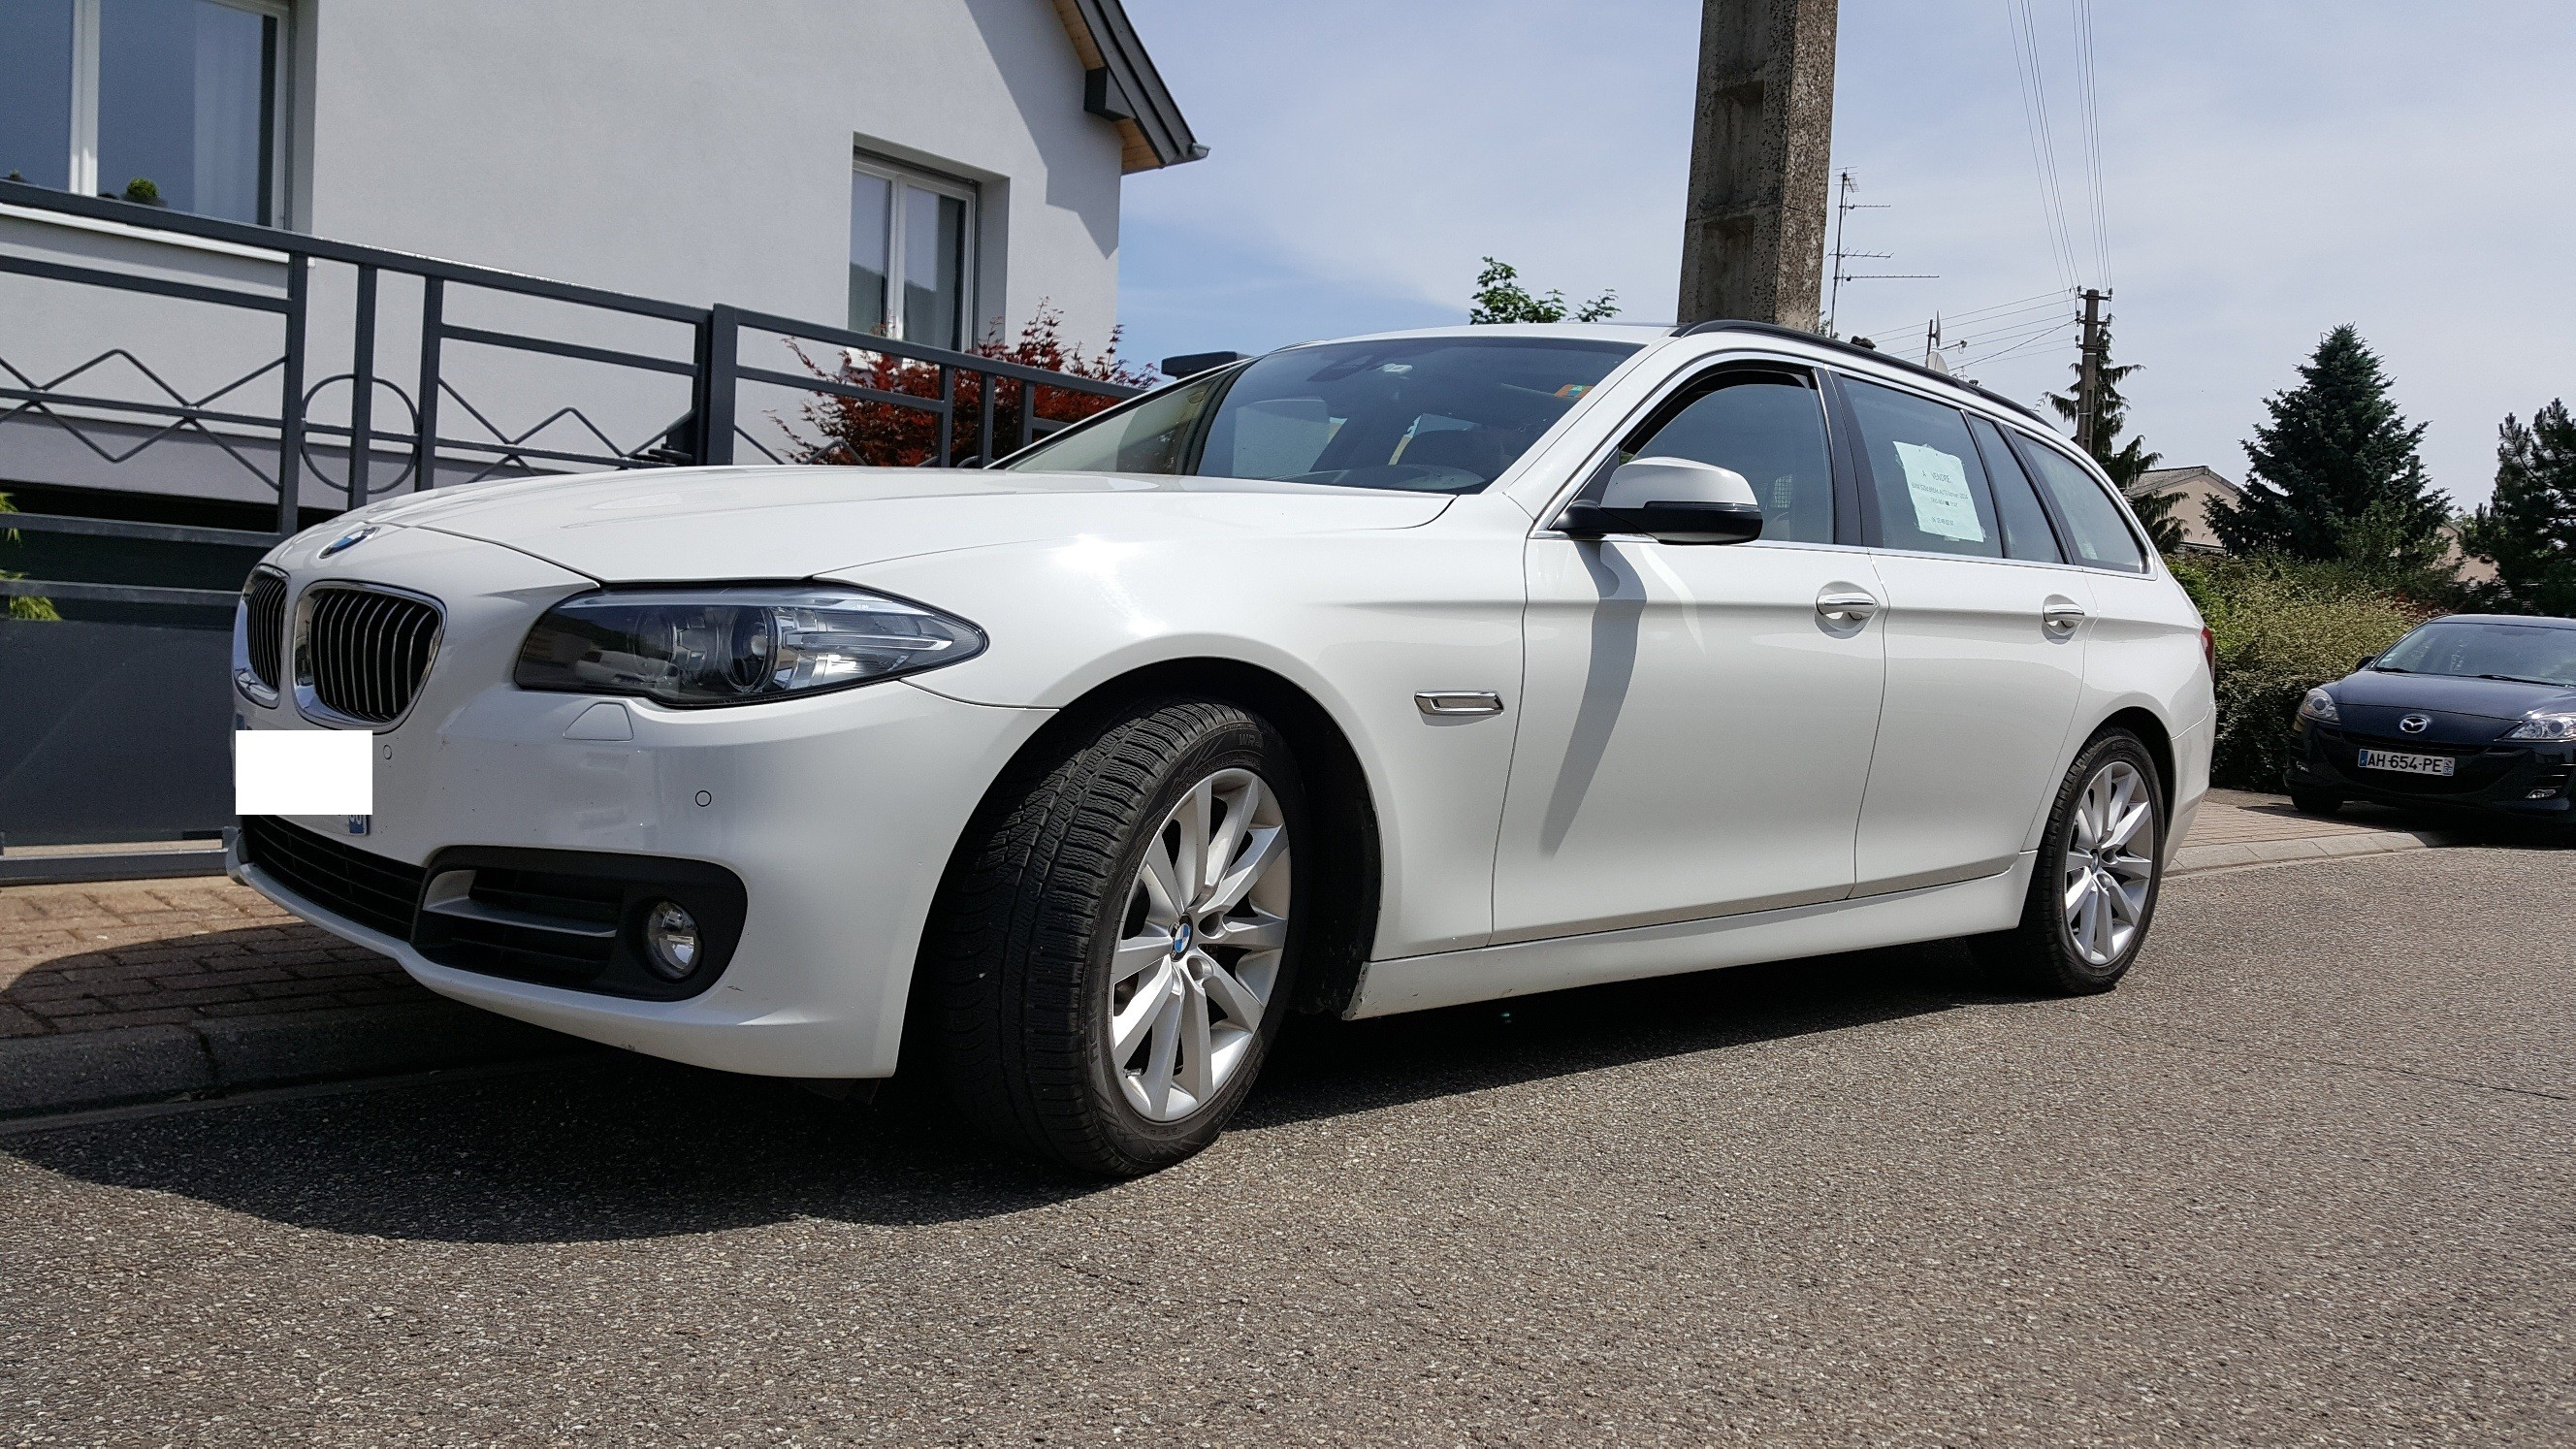 BMW Série 5 Break SAV8 Luxury 2014